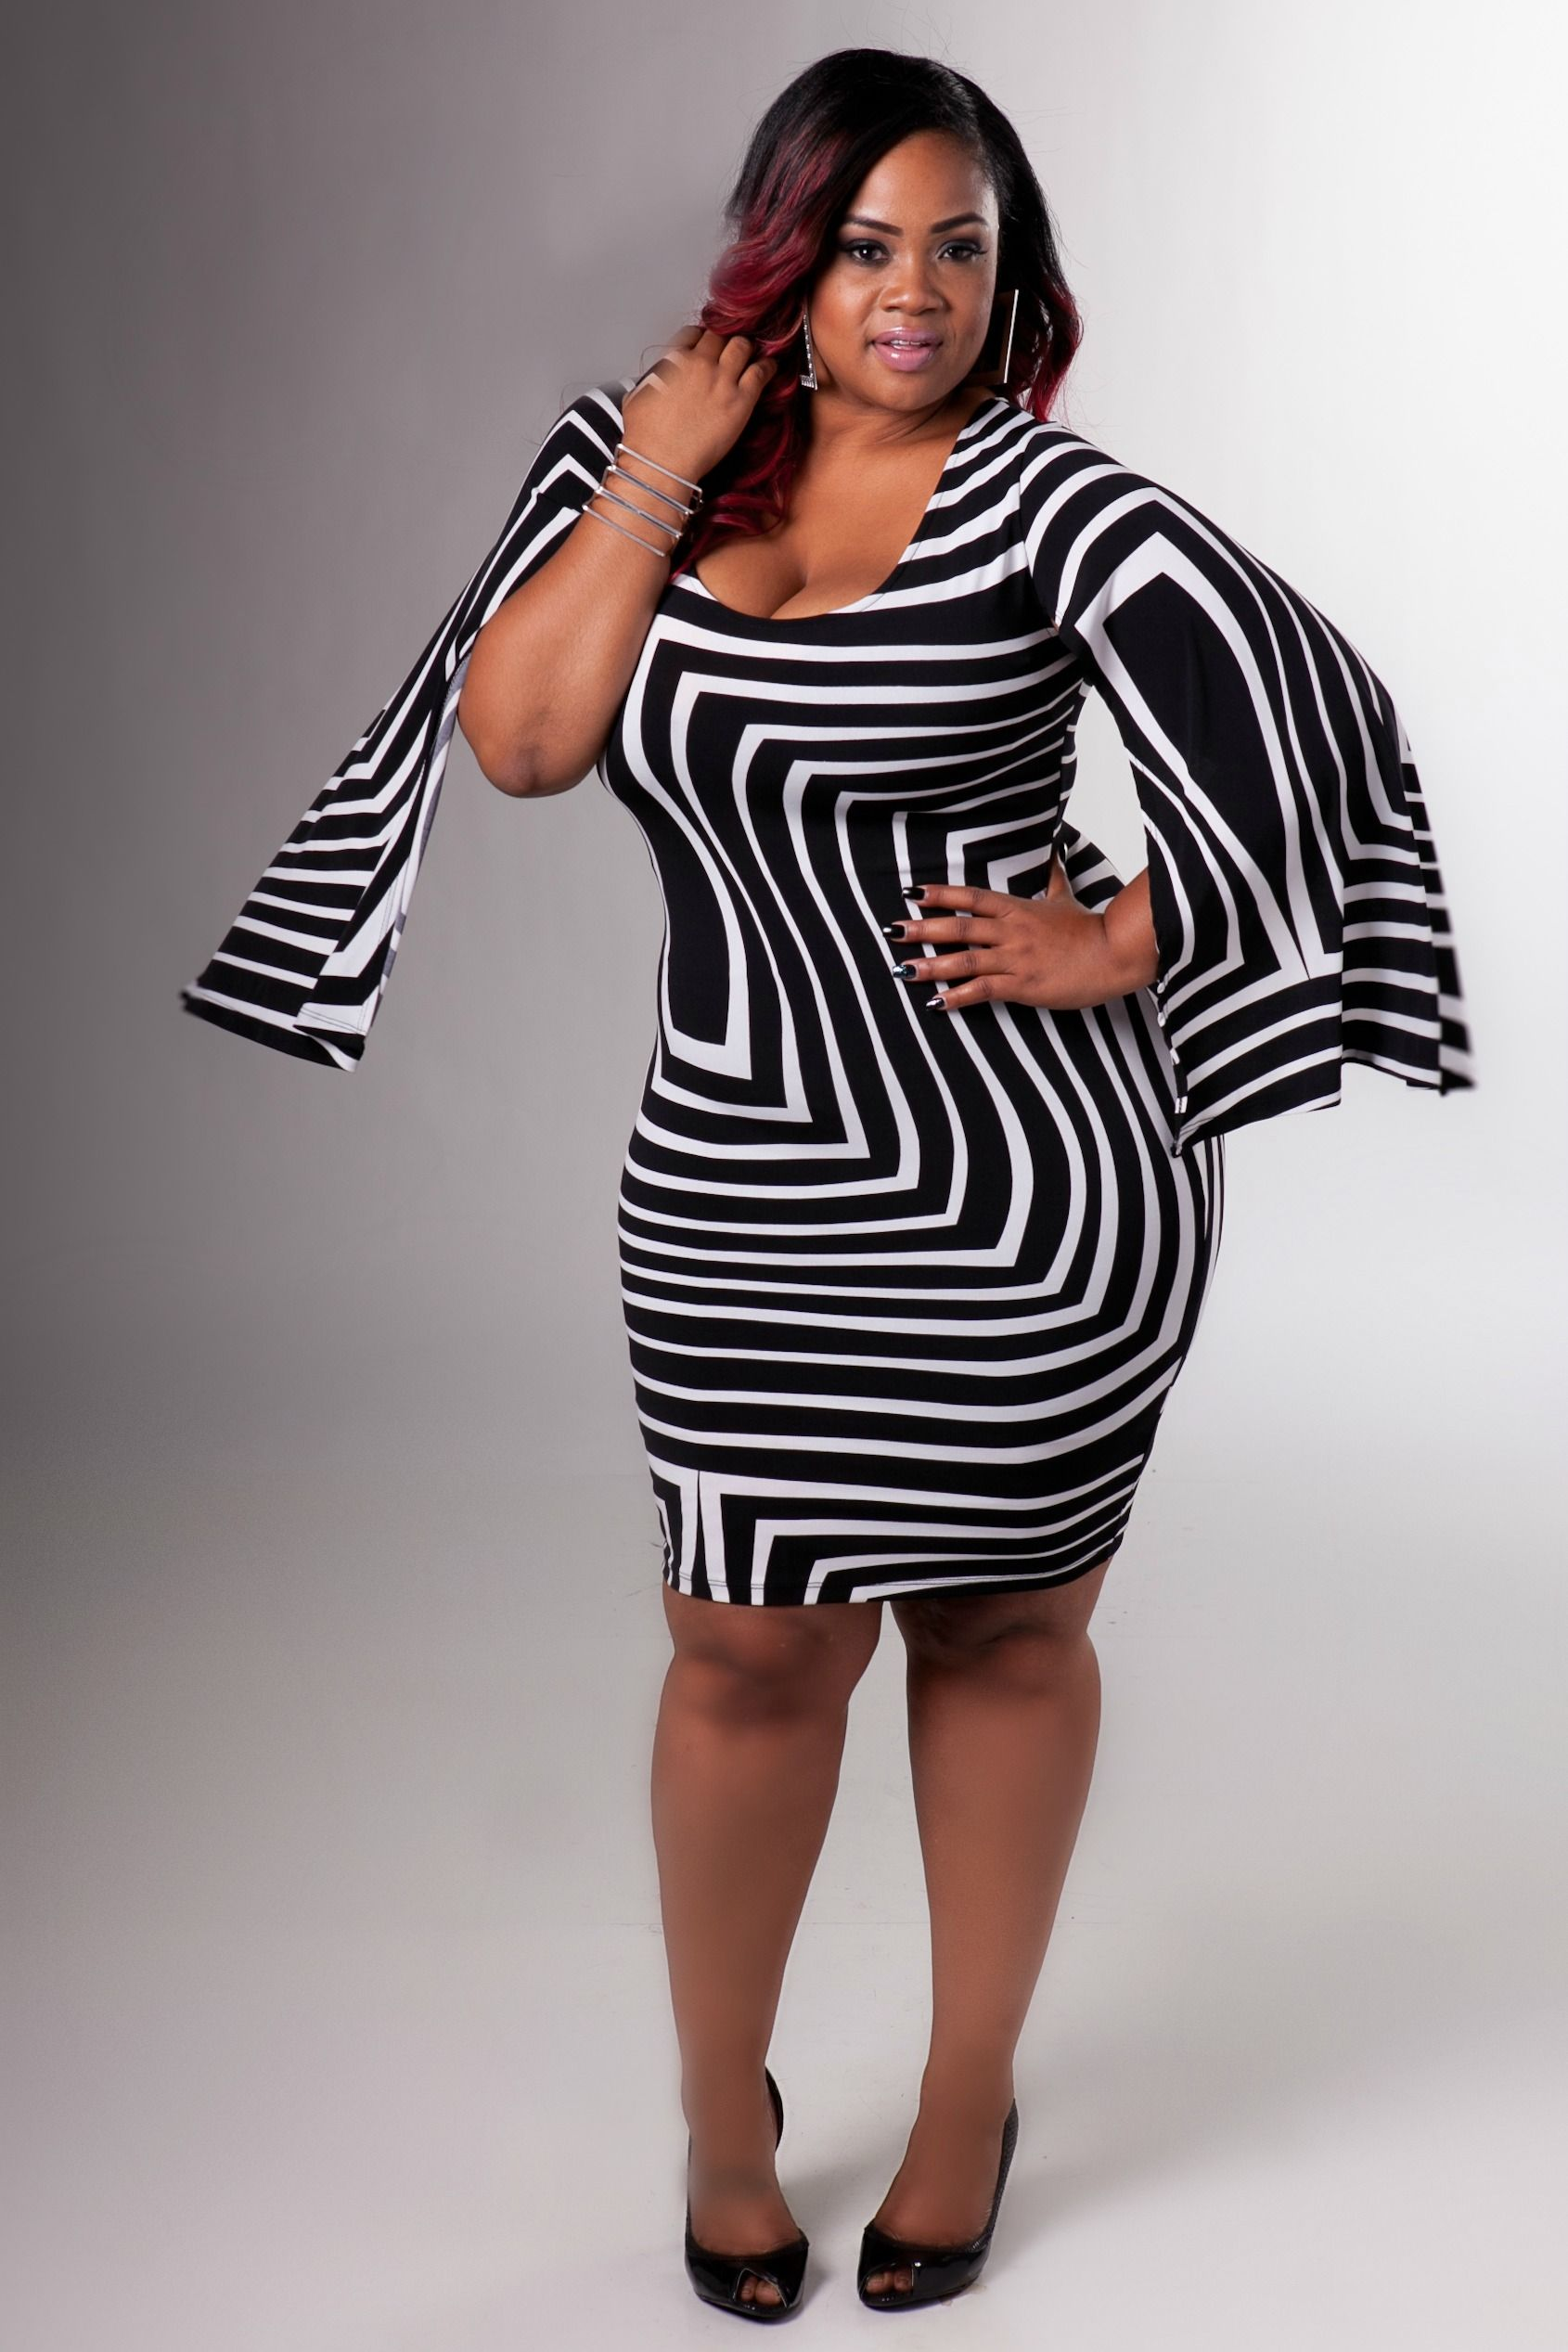 curvy plus size girls | plus size fashion: chic and curvy boutique